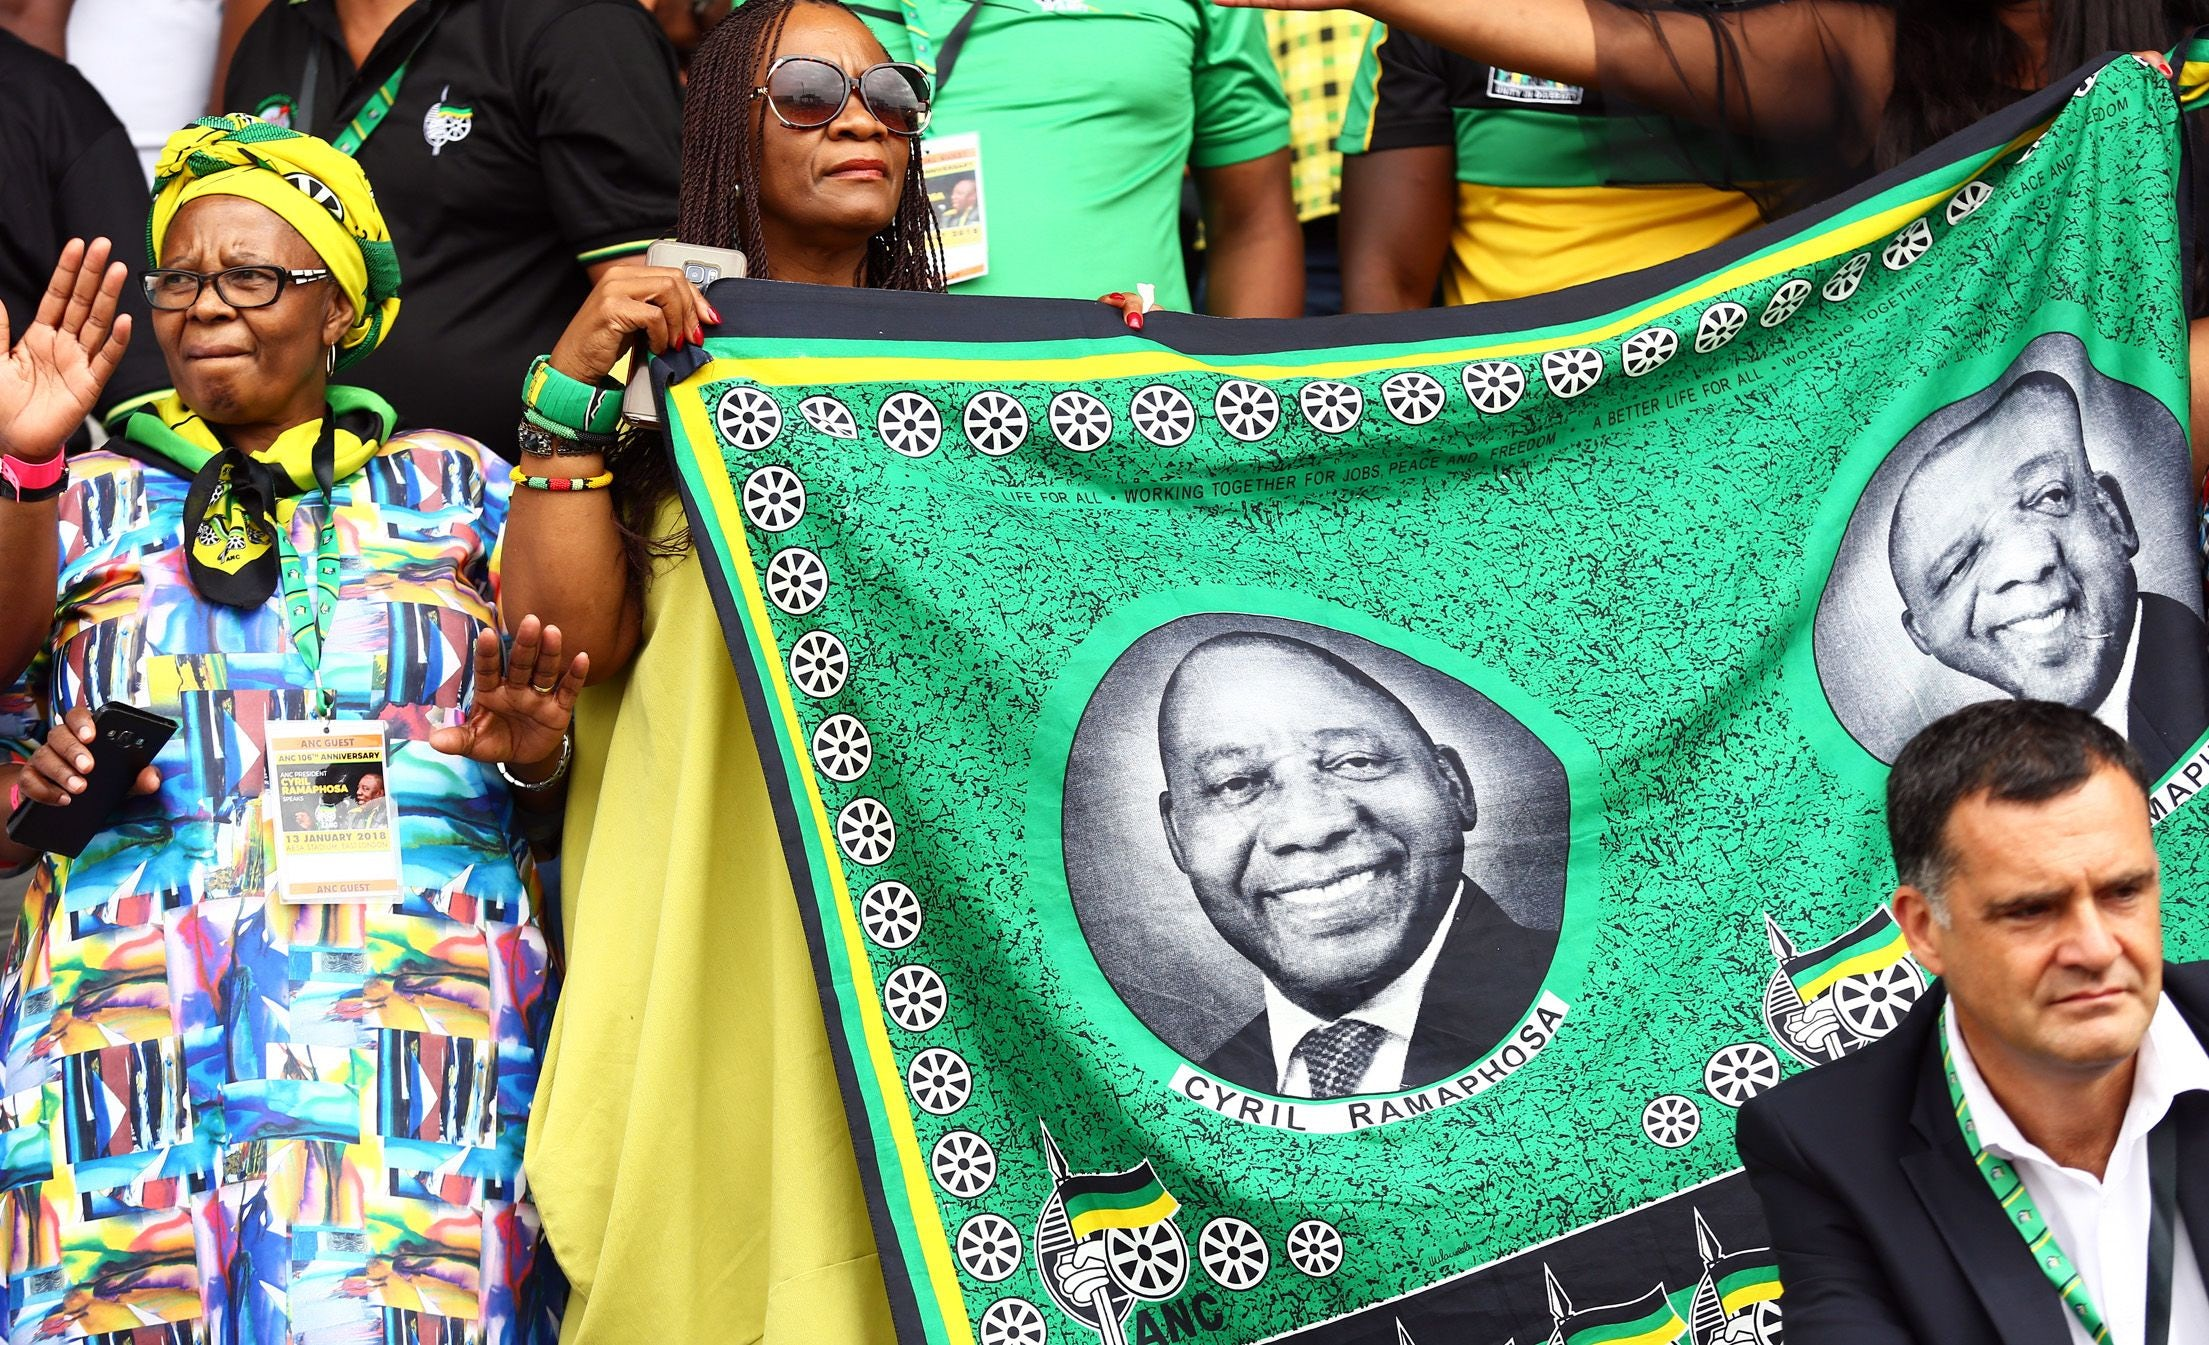 Supporters with material depicting newly elected African National Congress President, Cyril Ramaphosa during the ANC 106th anniversary celebrations at ABSA Stadium, East London, South Africa | Photo: STR/EPA EFE/REX/Shutterstock